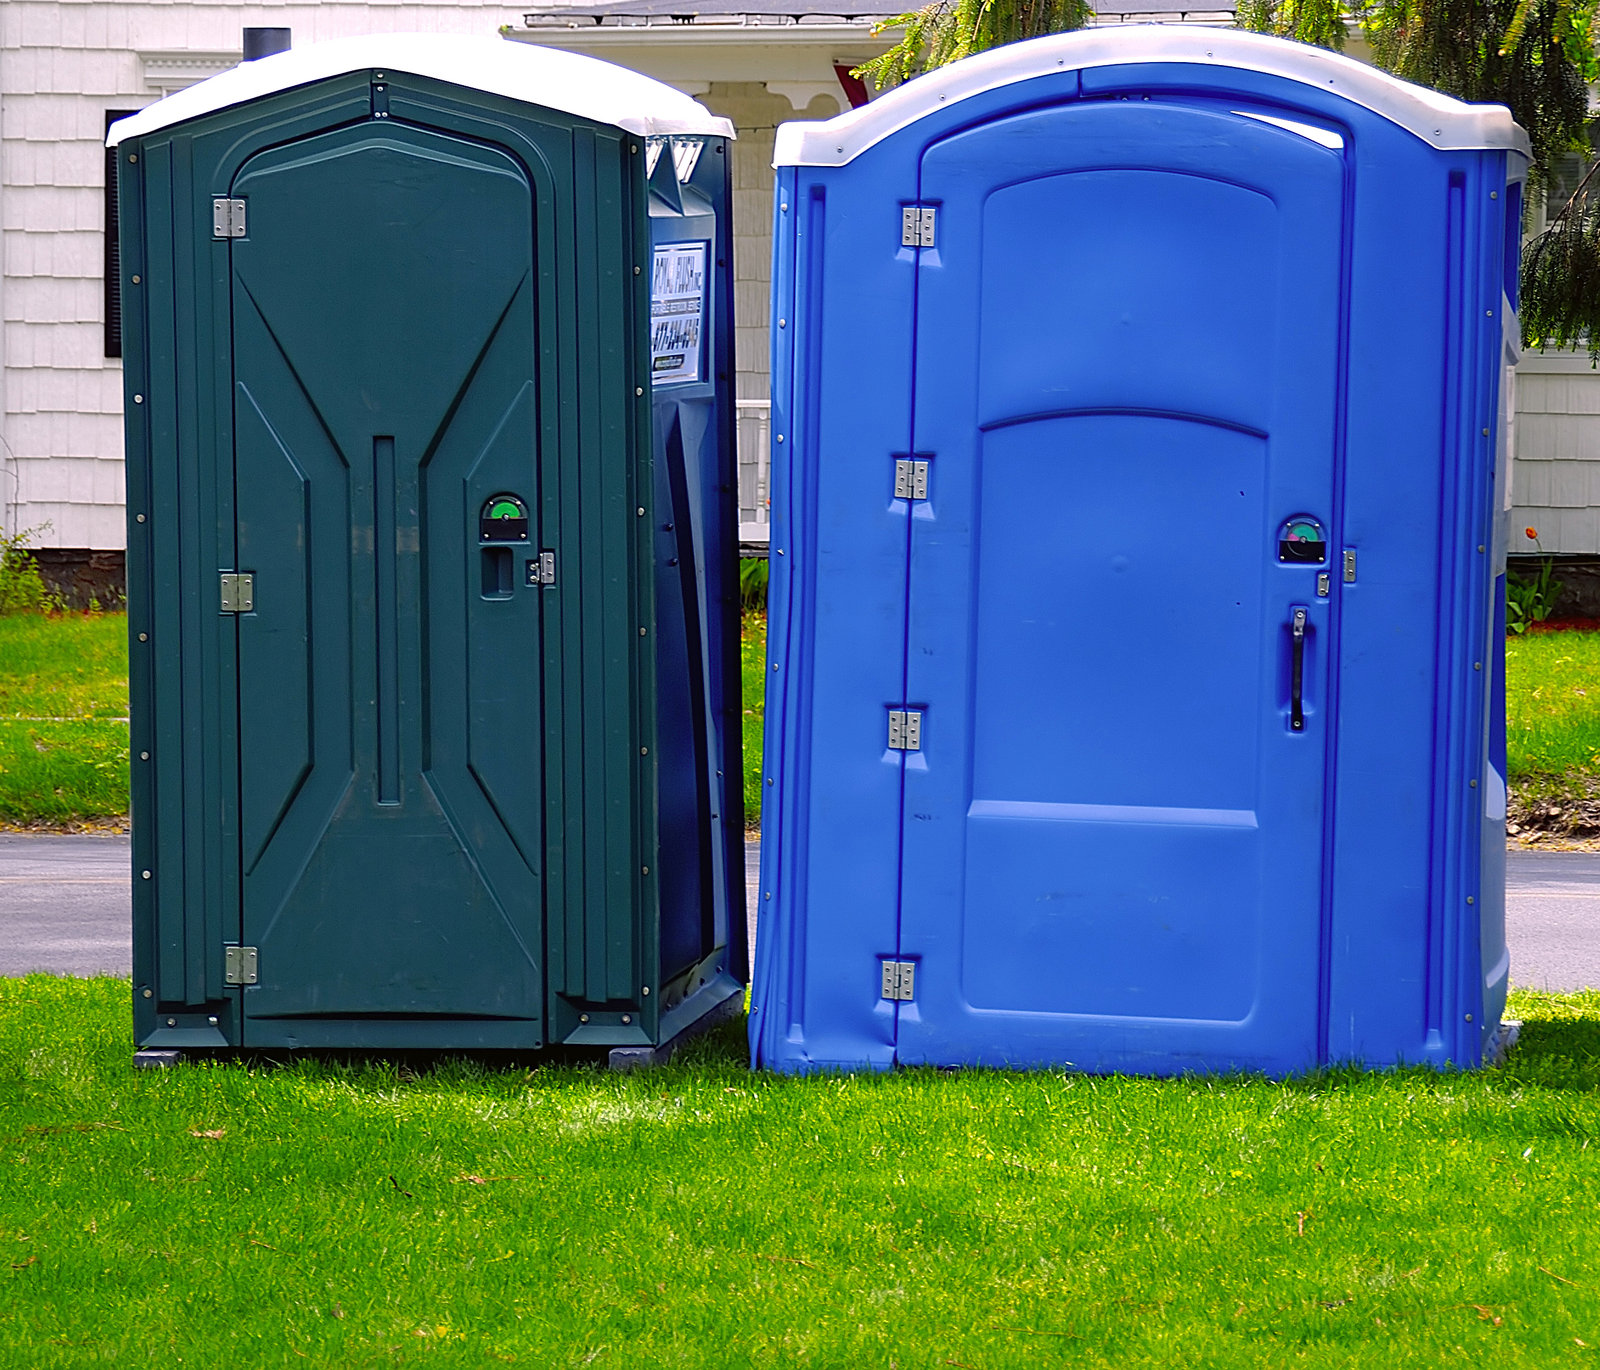 two porta potty on the grass